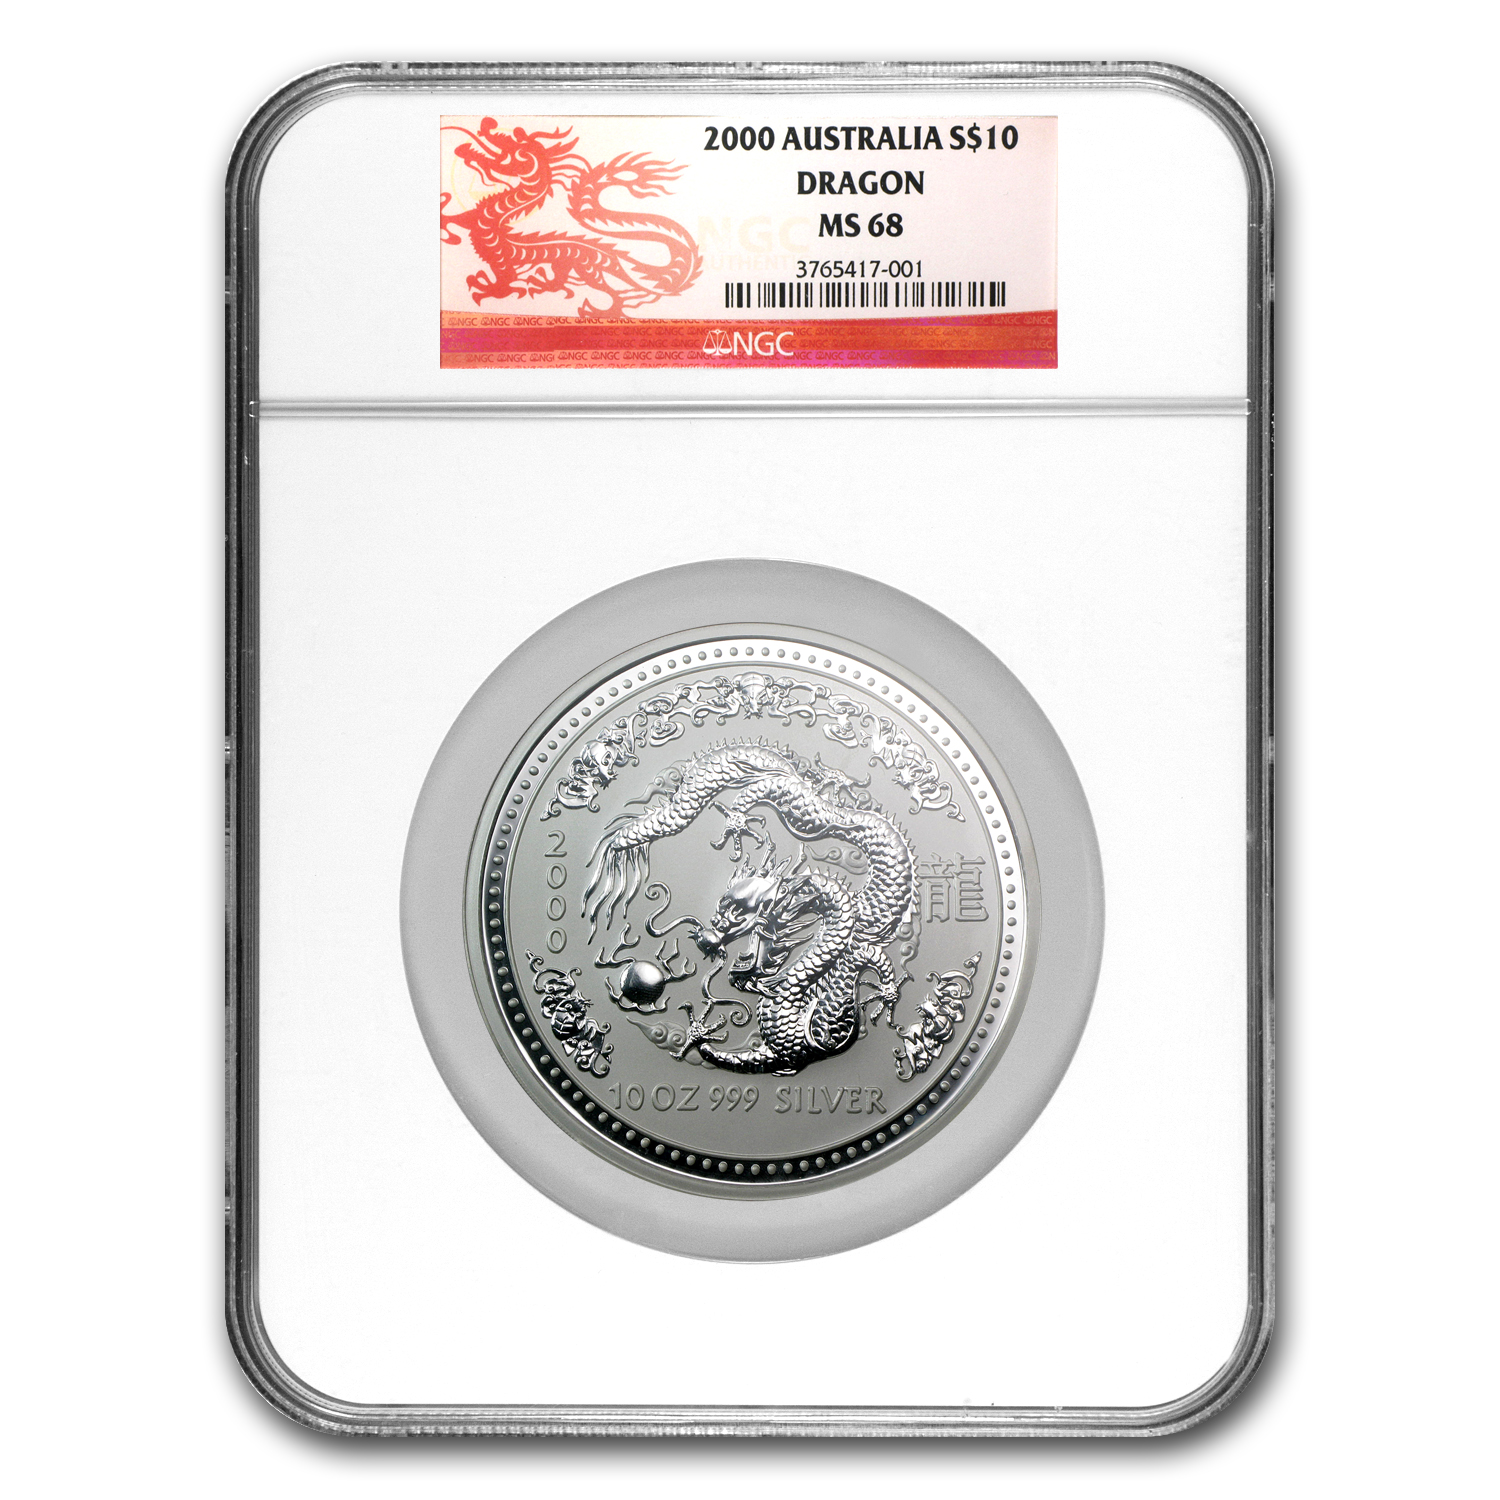 2000 Australia 10 oz Silver Year of the Dragon MS-68 NGC